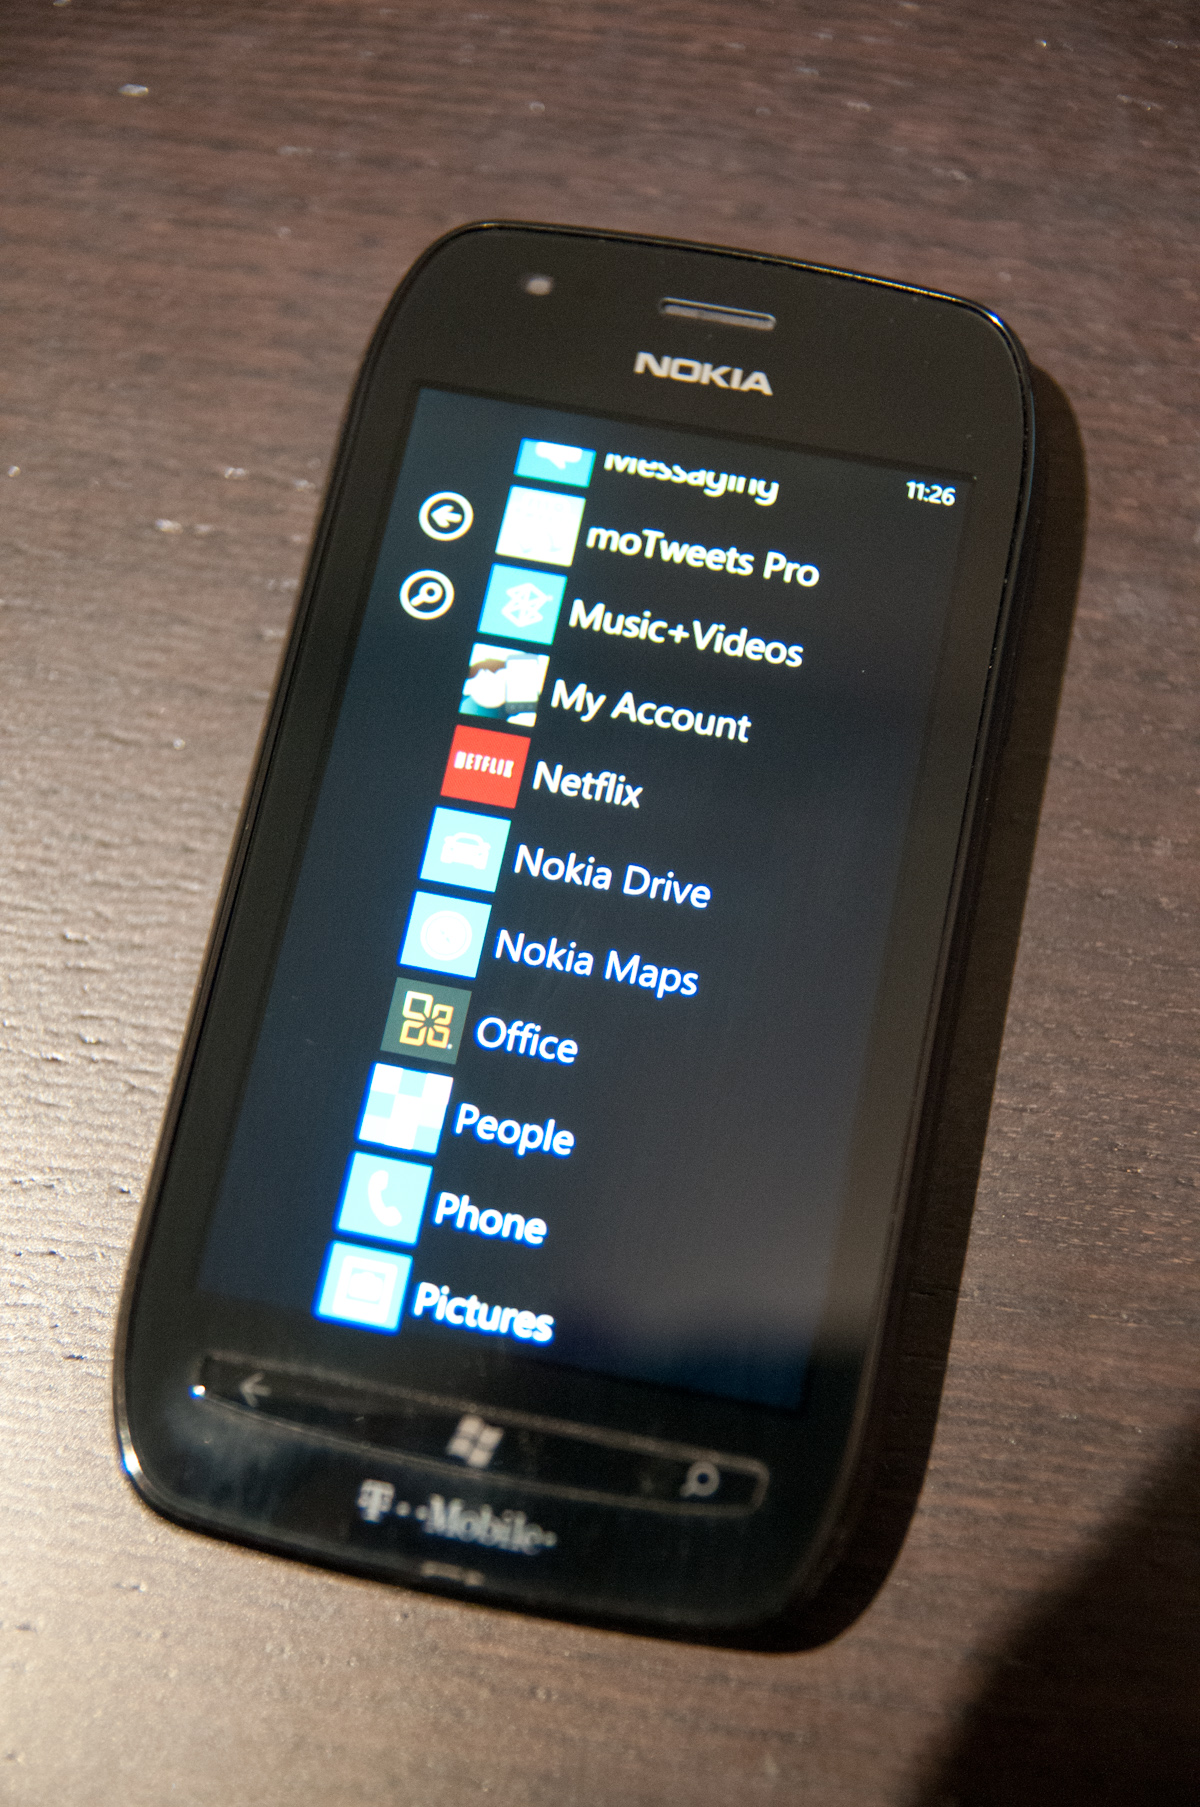 lumia 710 apps and preload nokia lumia 710 review t mobile 39 s nokia wp7. Black Bedroom Furniture Sets. Home Design Ideas